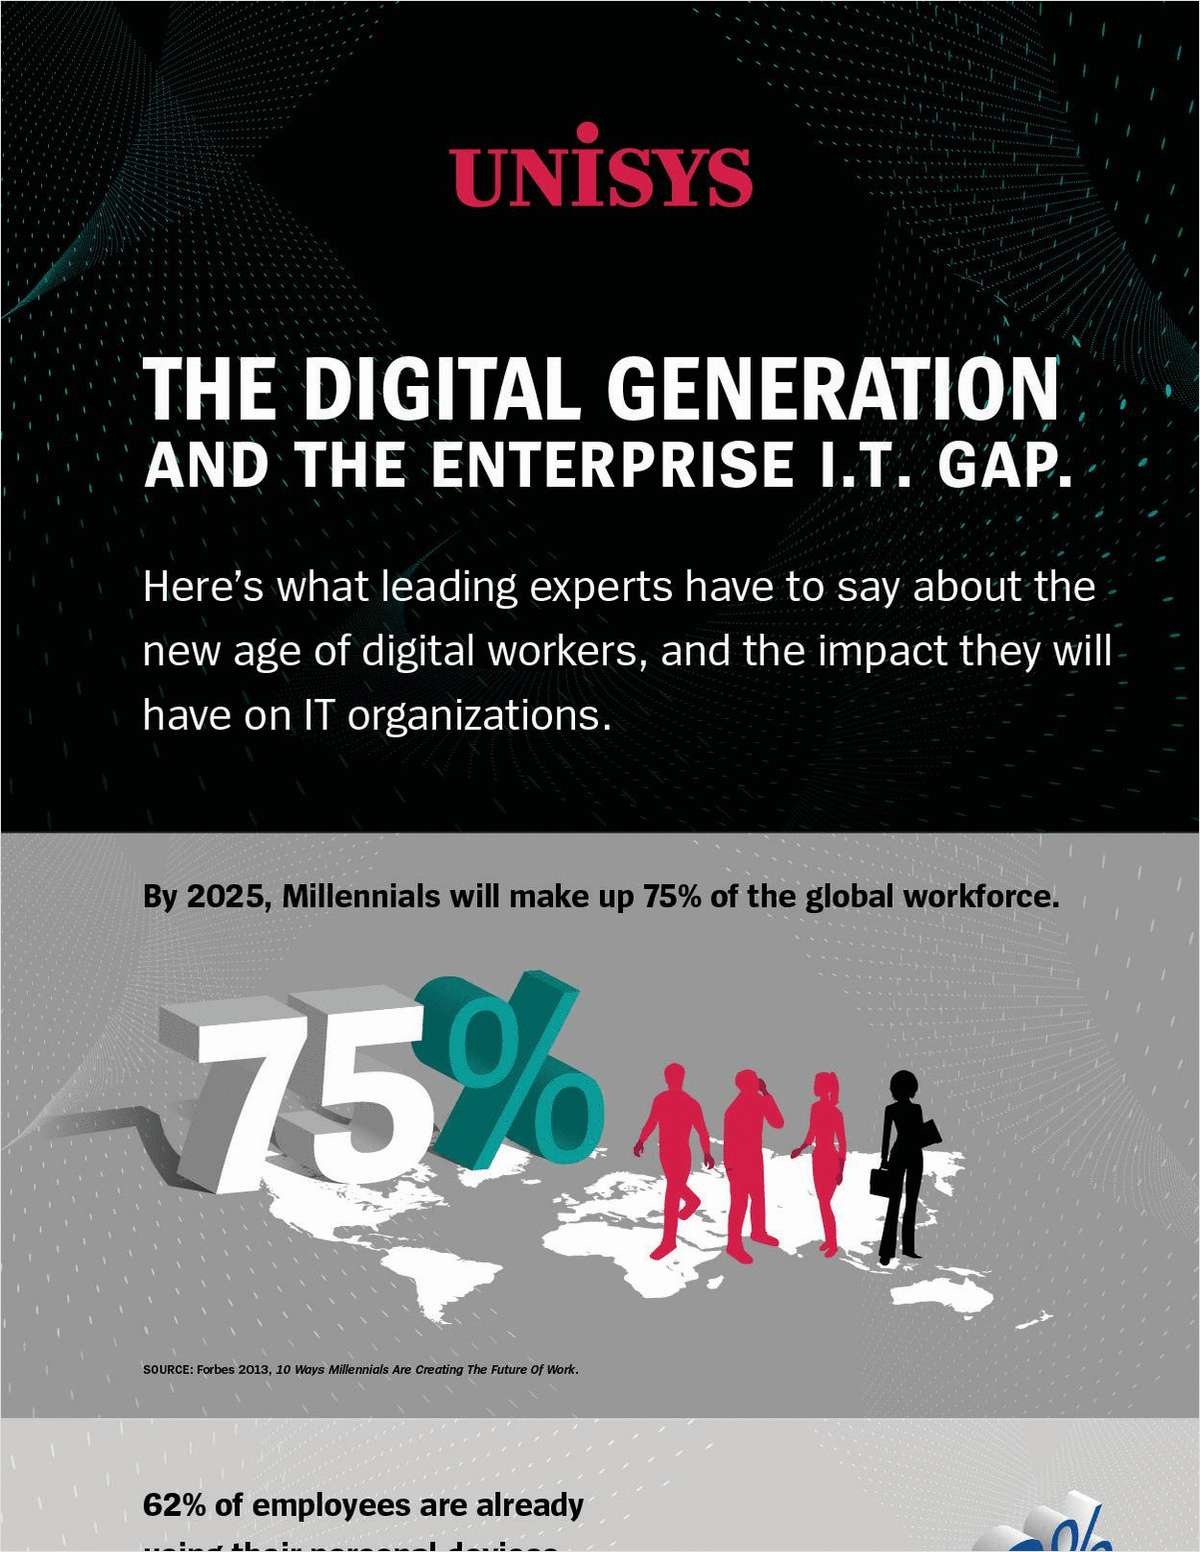 The Digital Generation and the Enterprise IT Gap